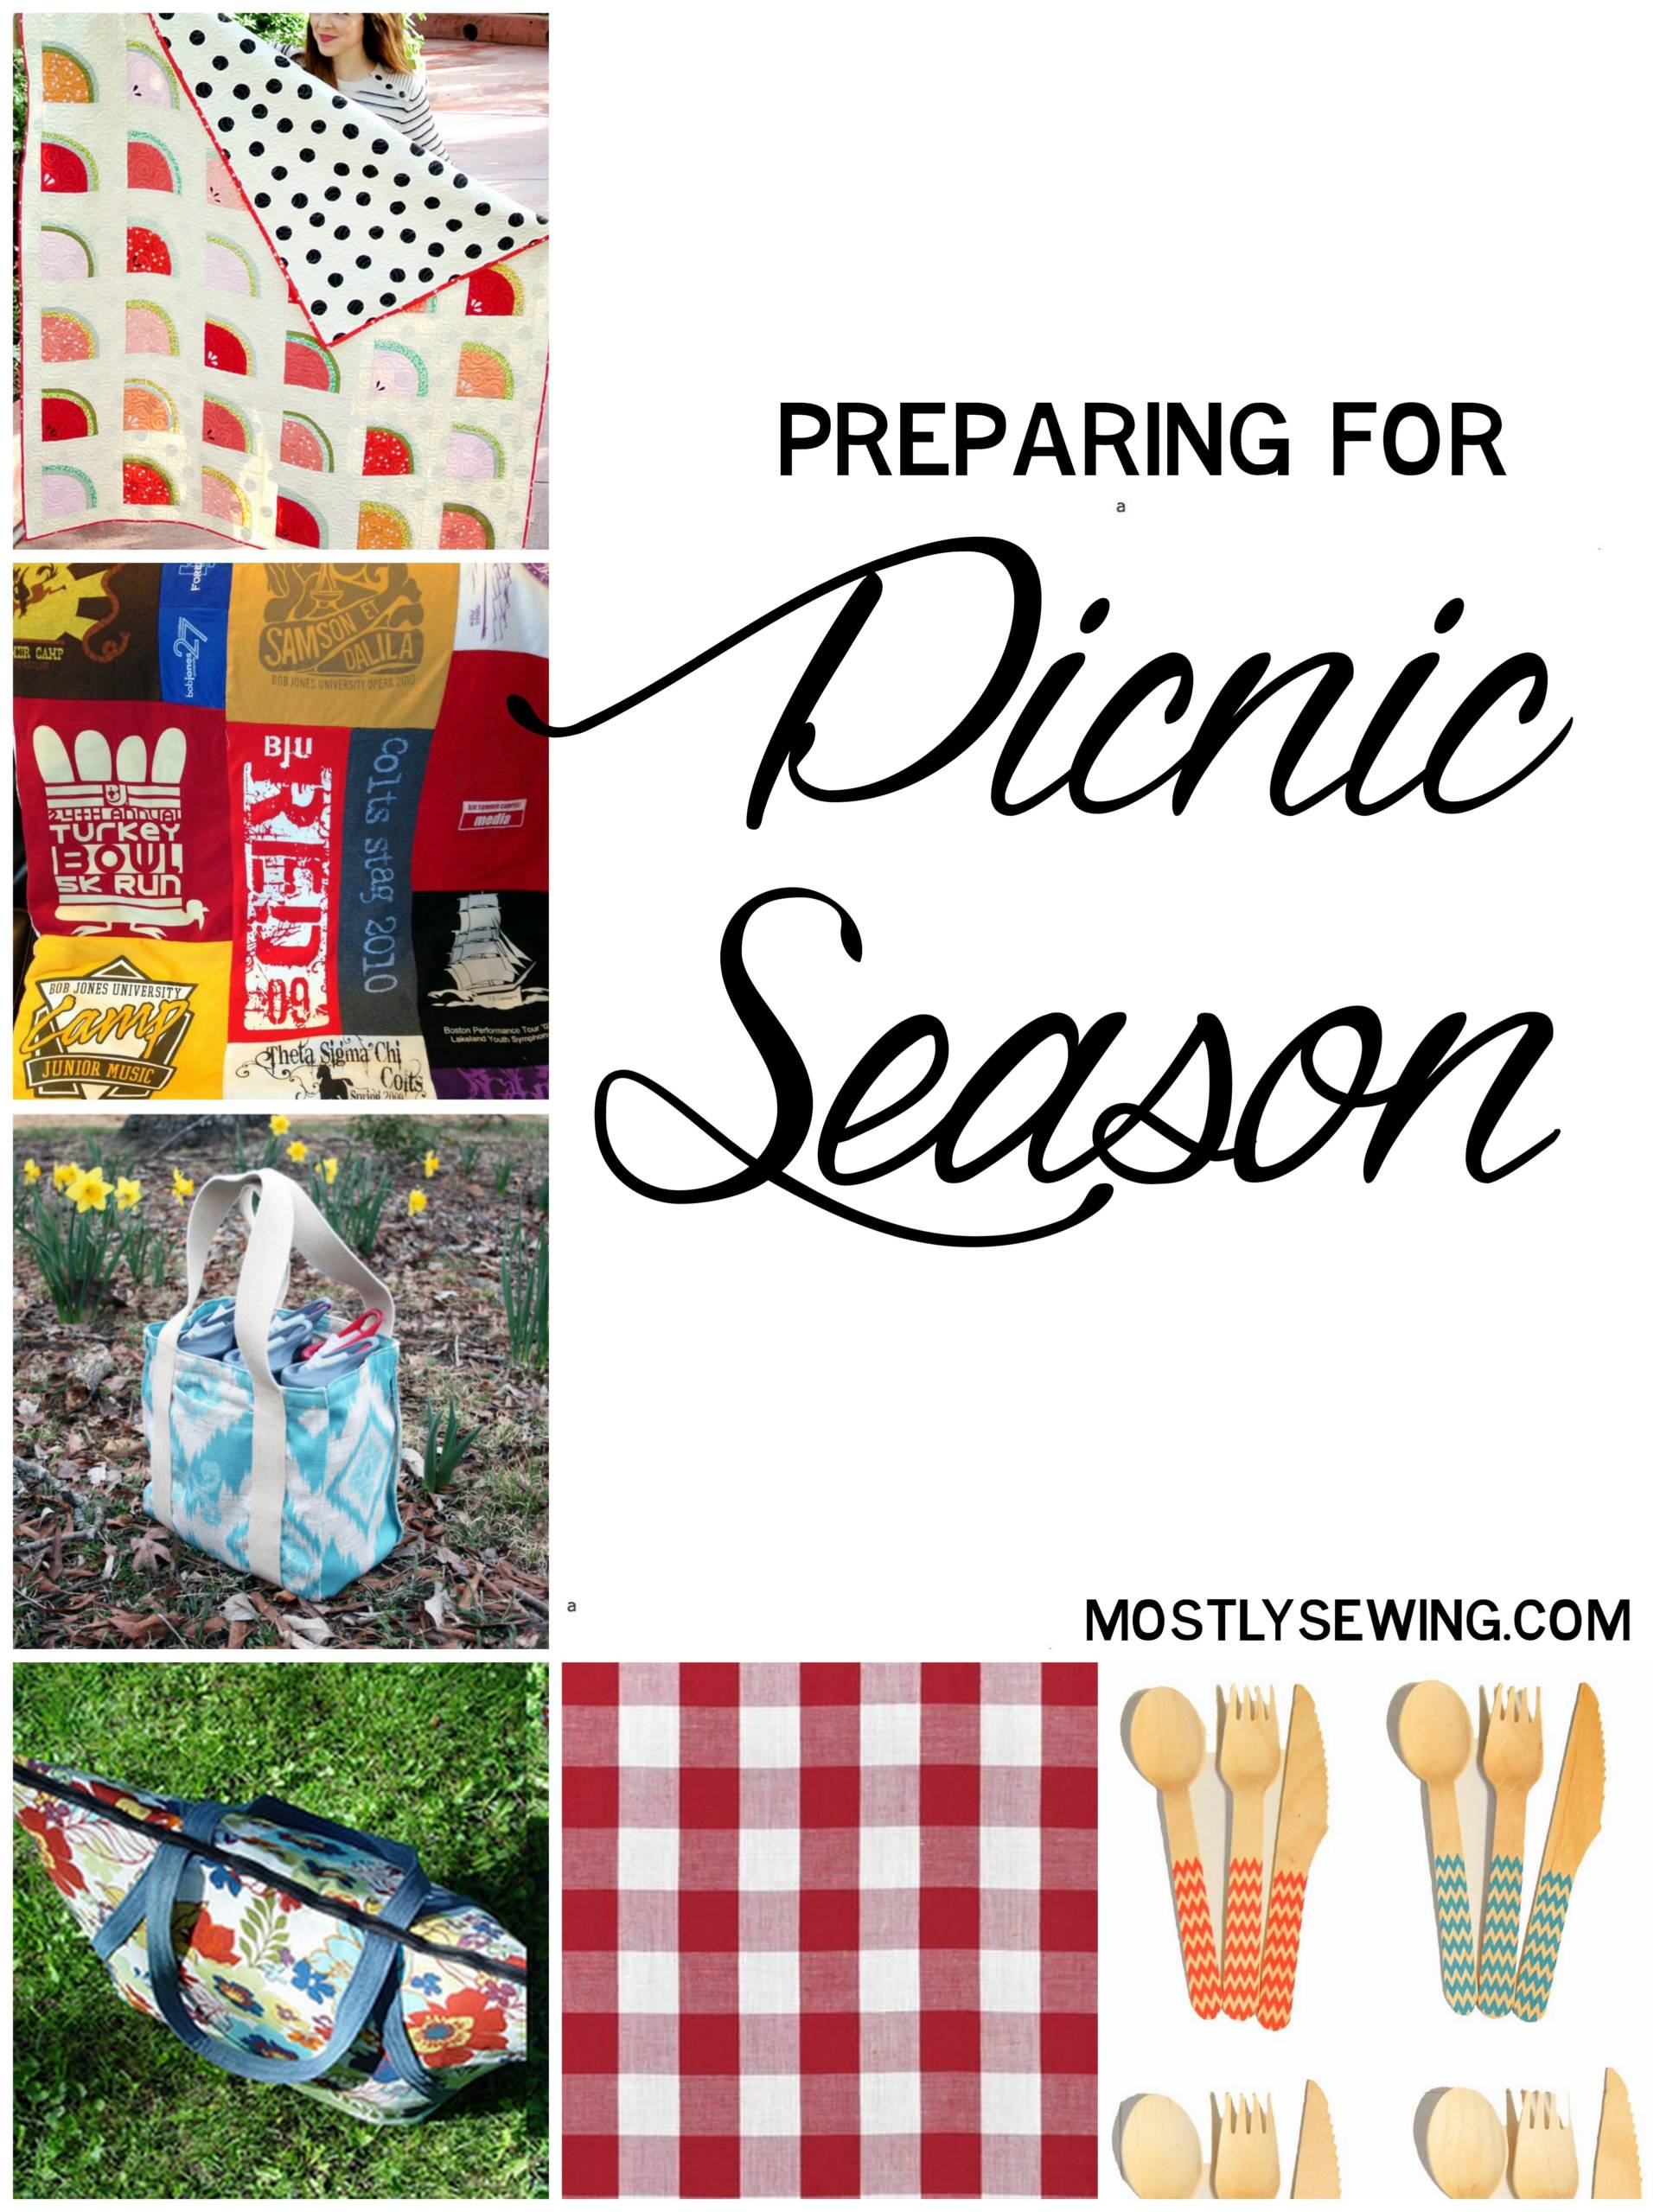 DIYs for the perfect picnic! Need this as the summer gets started!